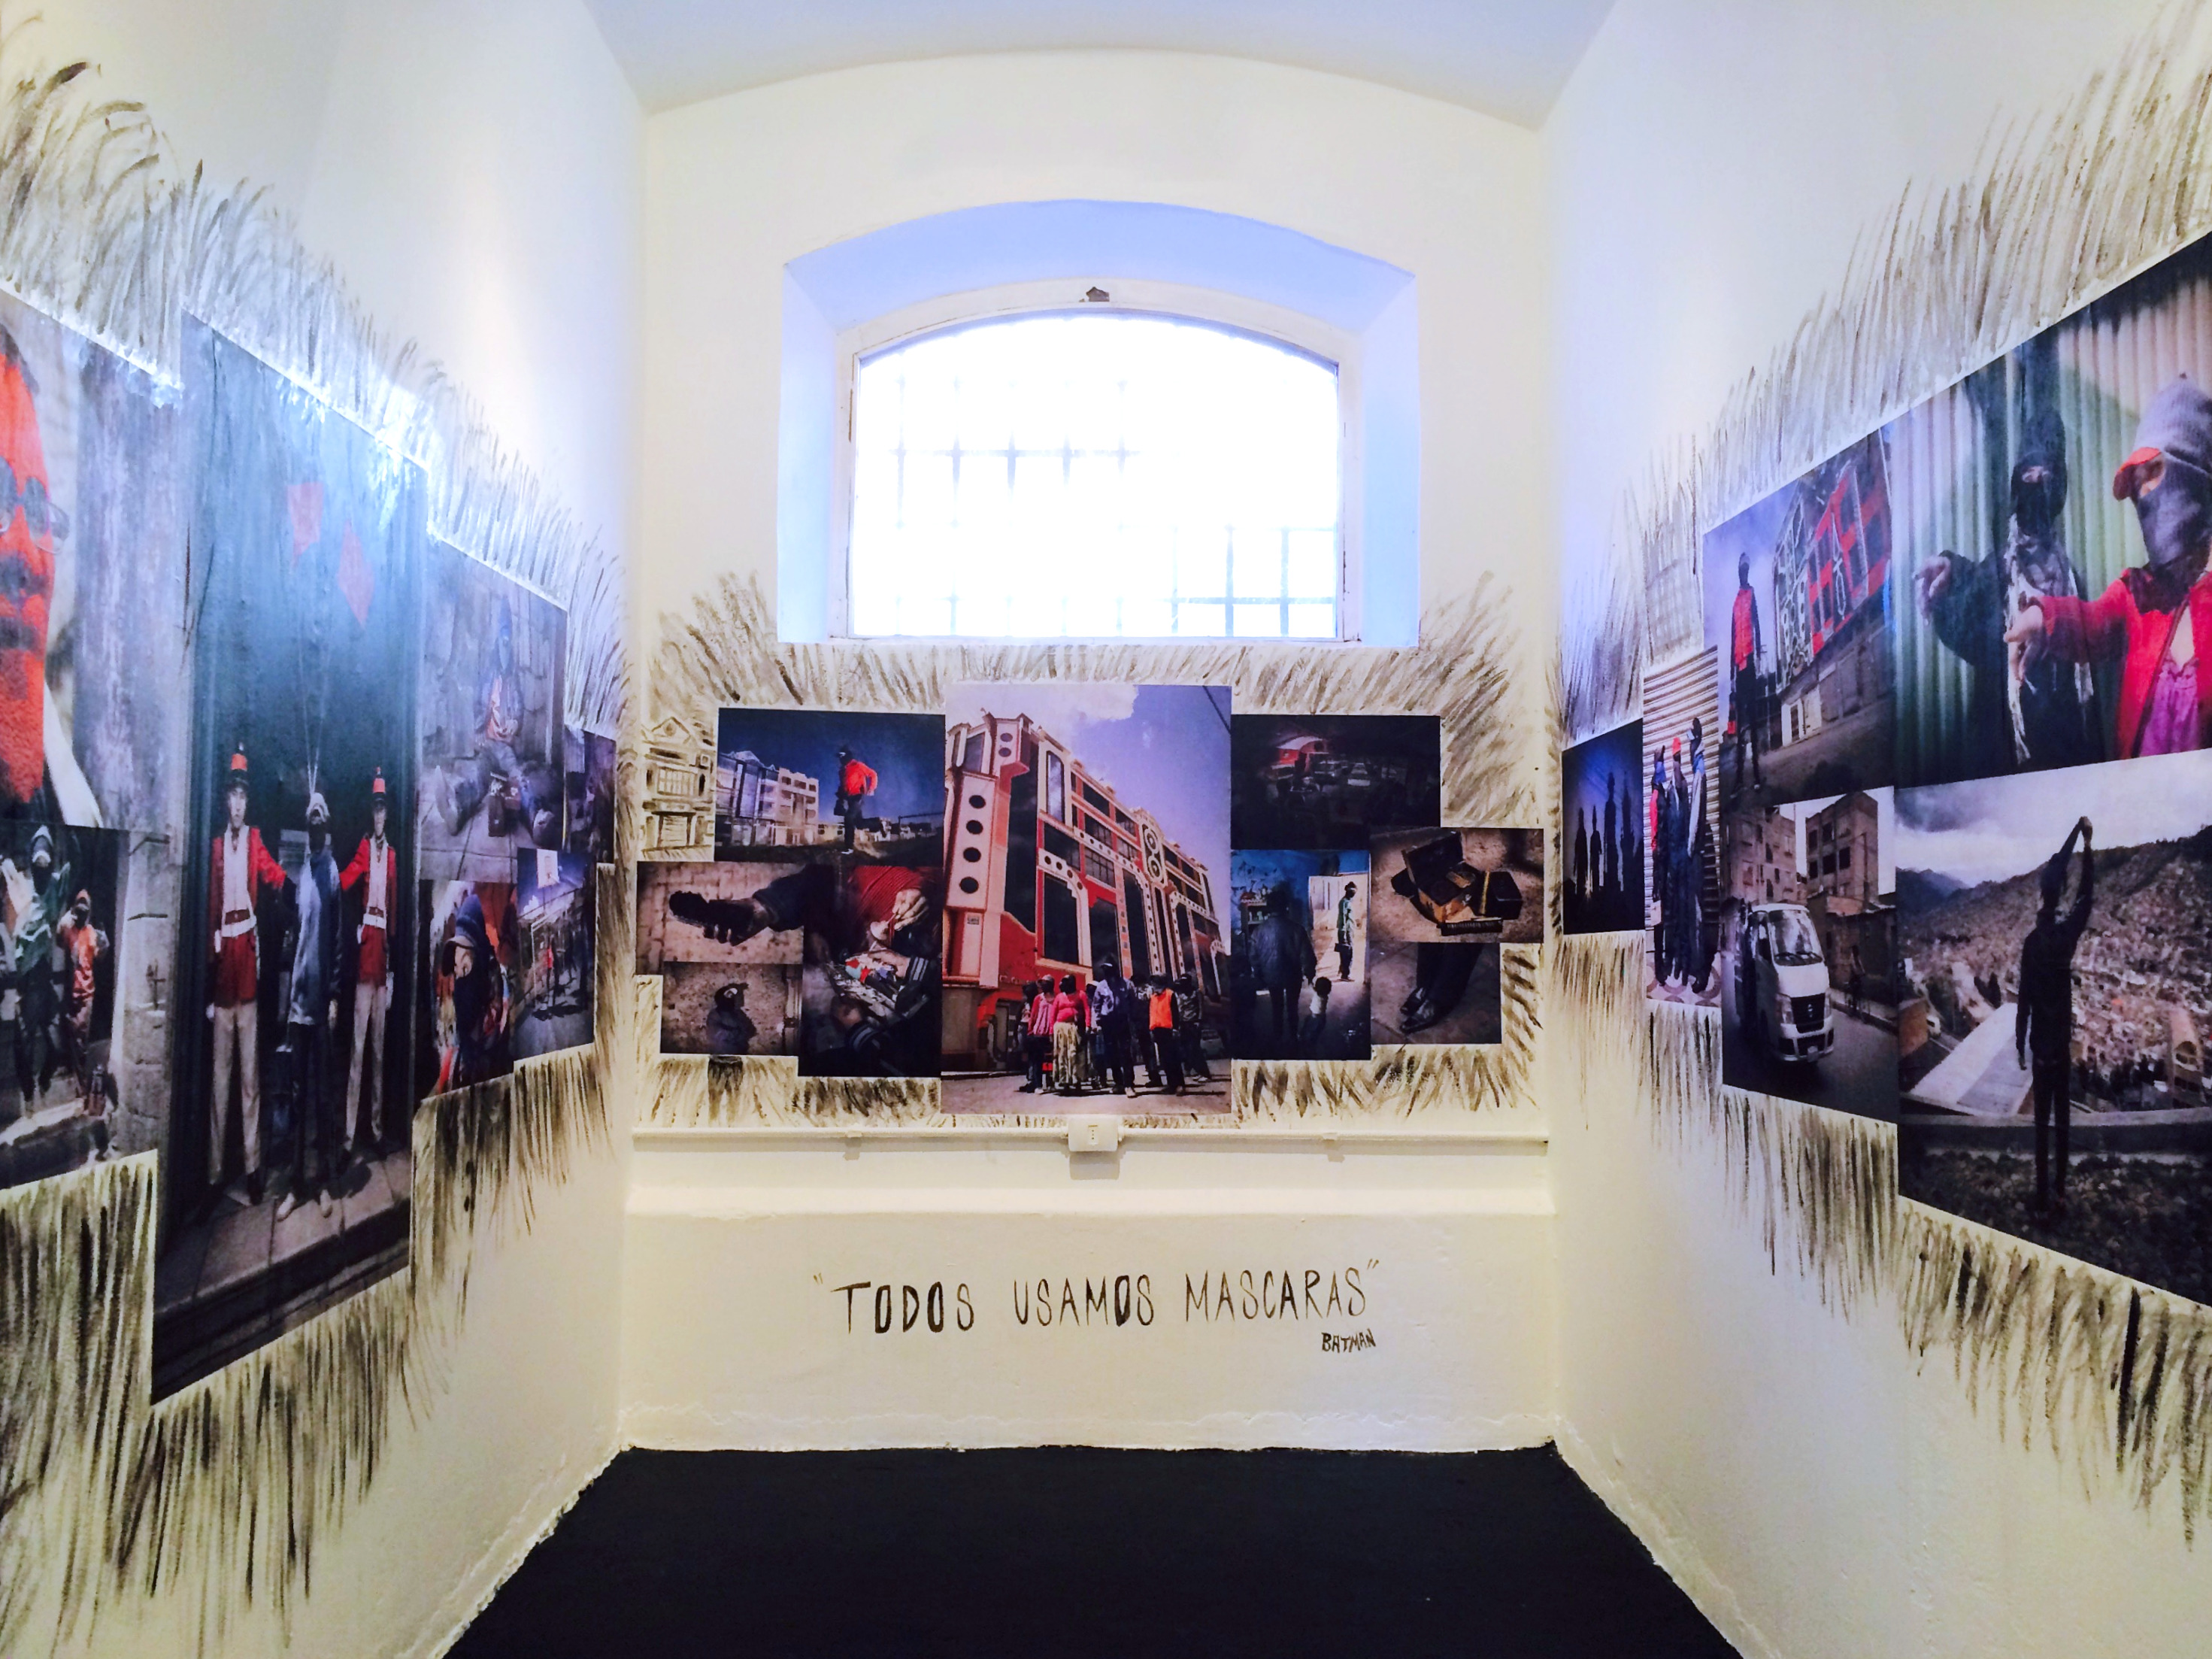 Contemporary art space in Montevideo 2015